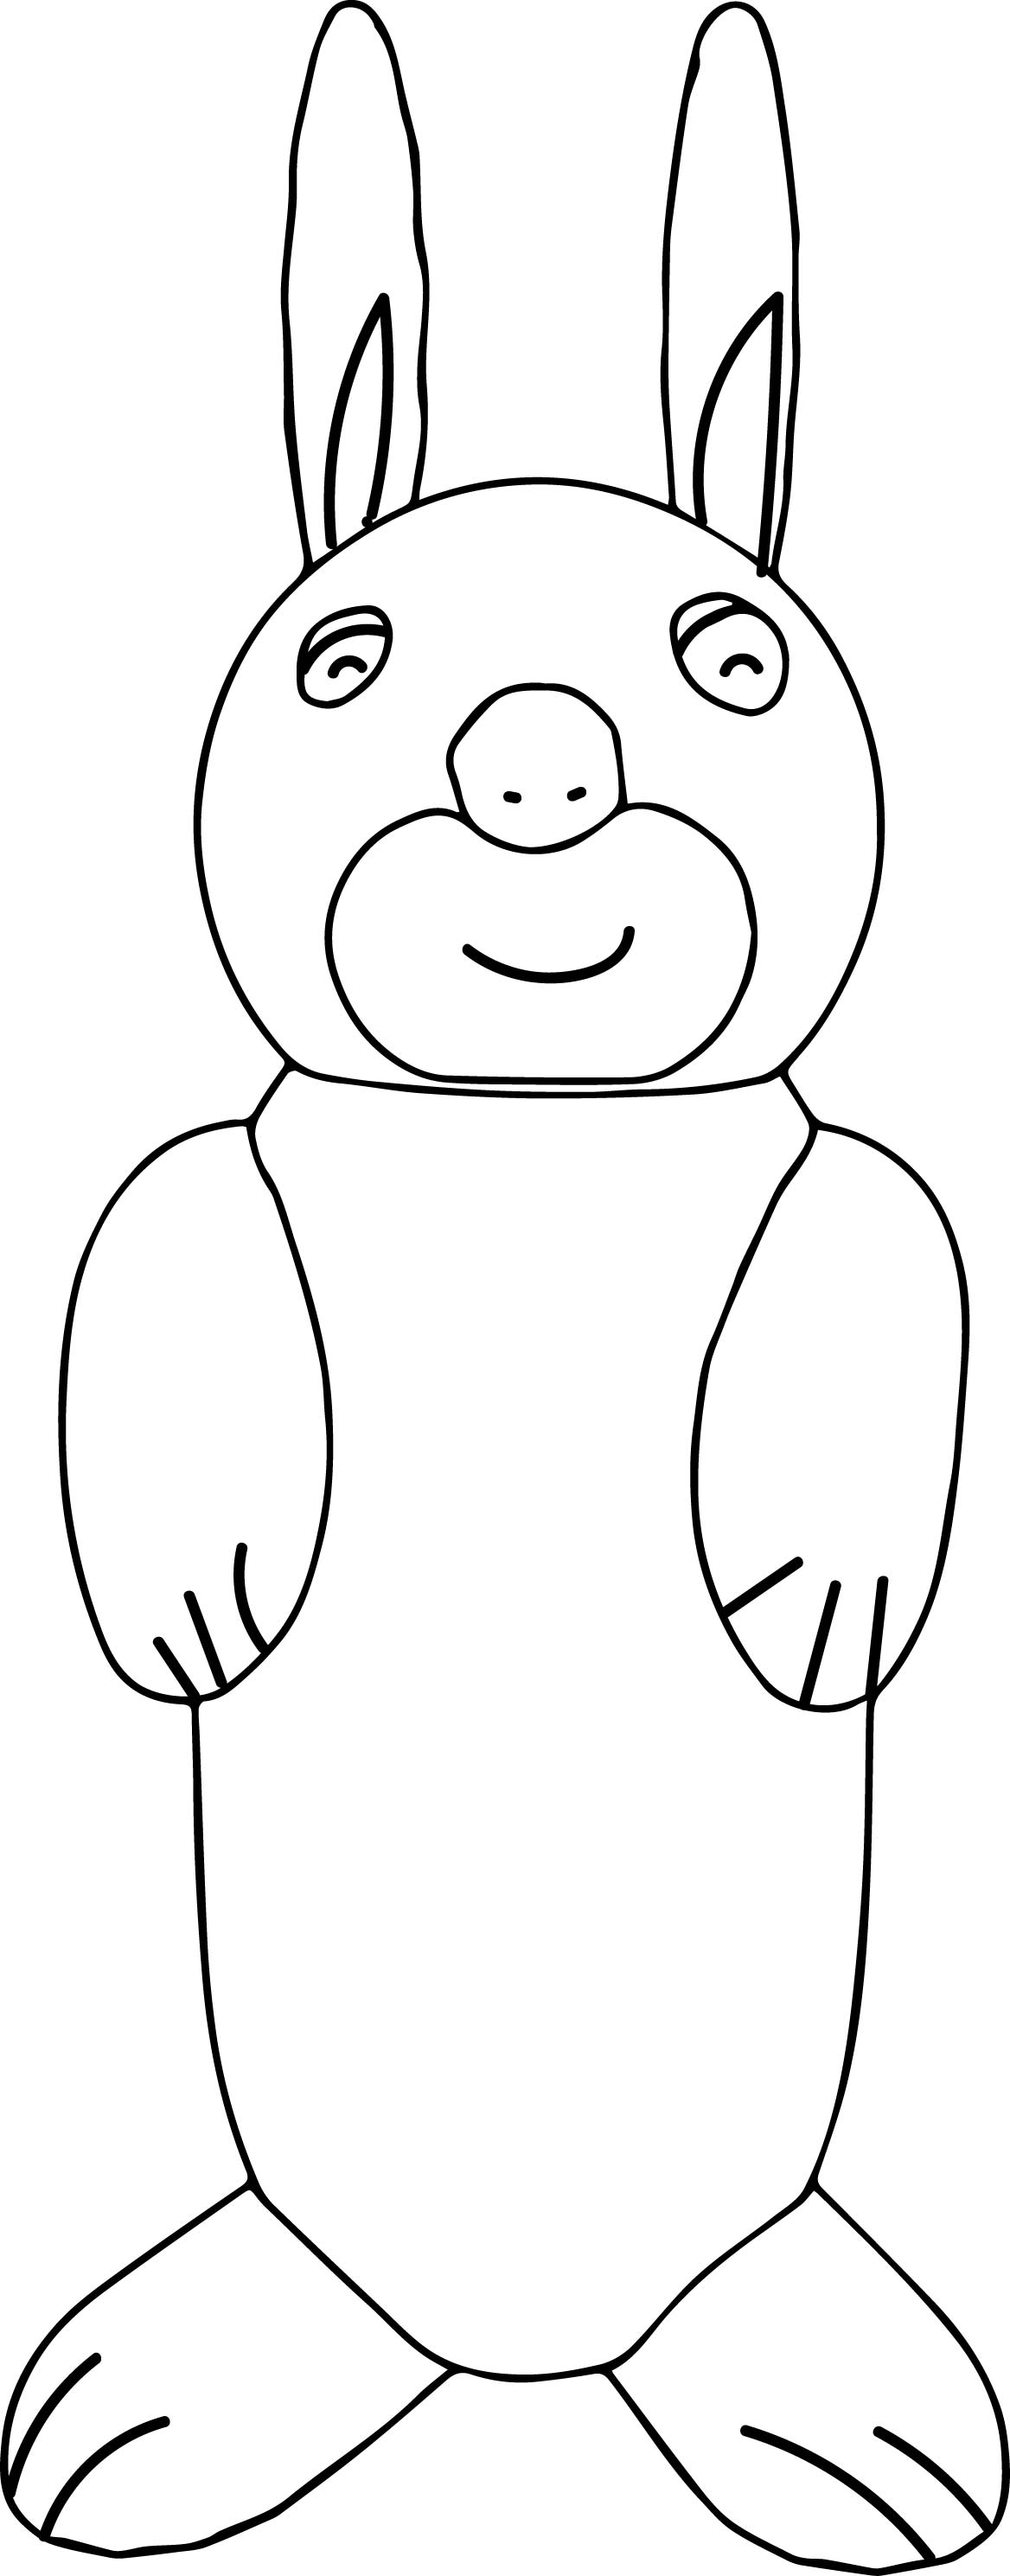 Bunny Standing Coloring Page